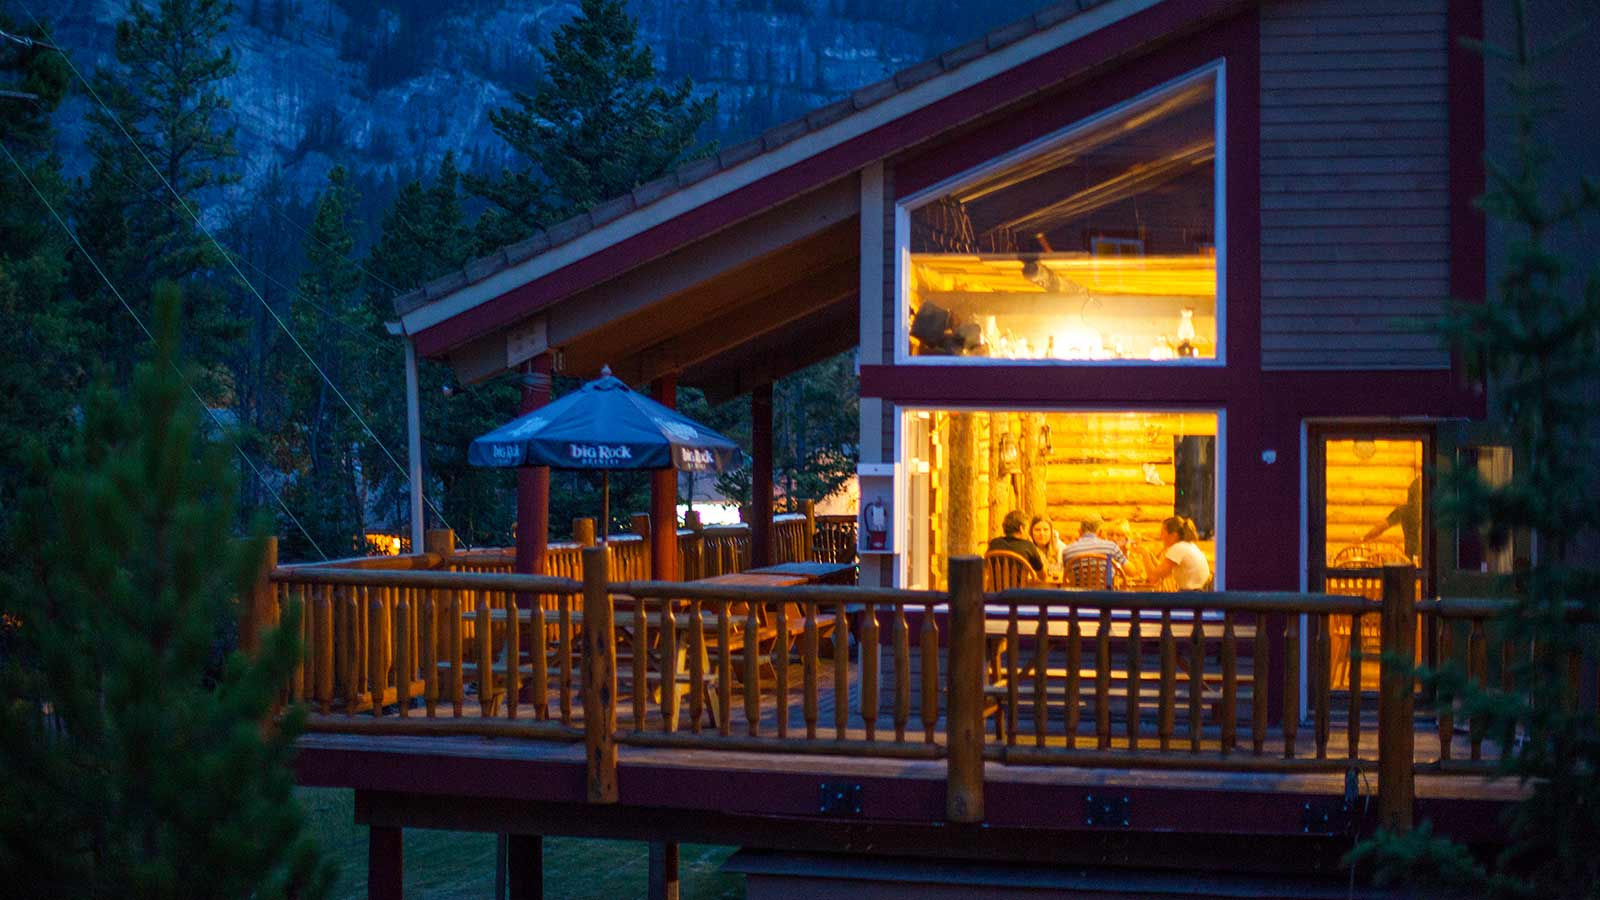 Wooden lodge with people sitting inside at HI Banff Hostel